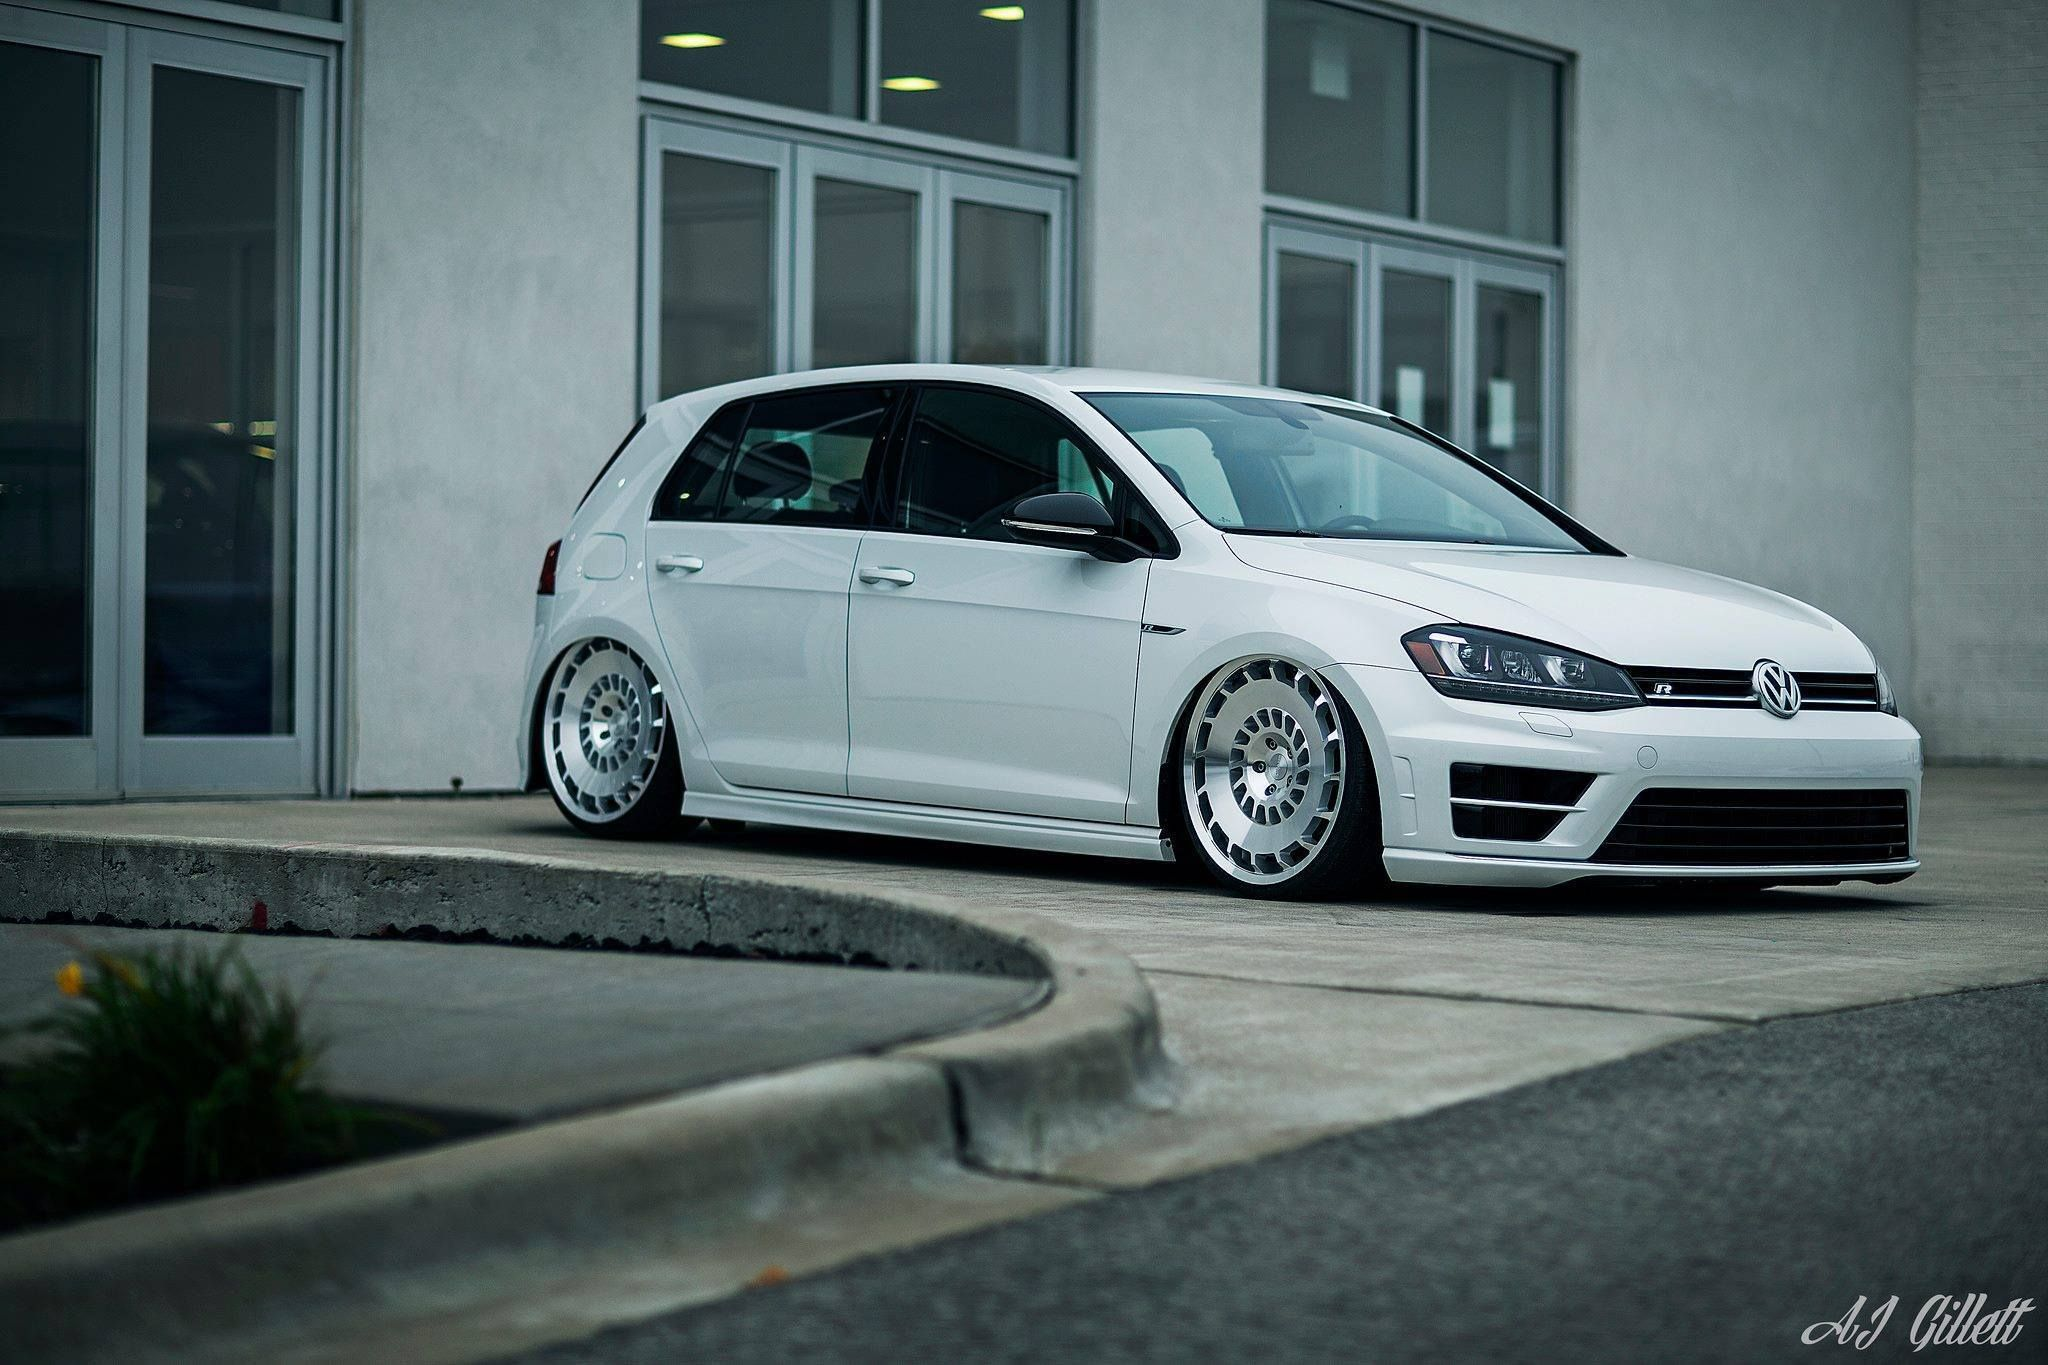 VW Golf mk7 Rotiform